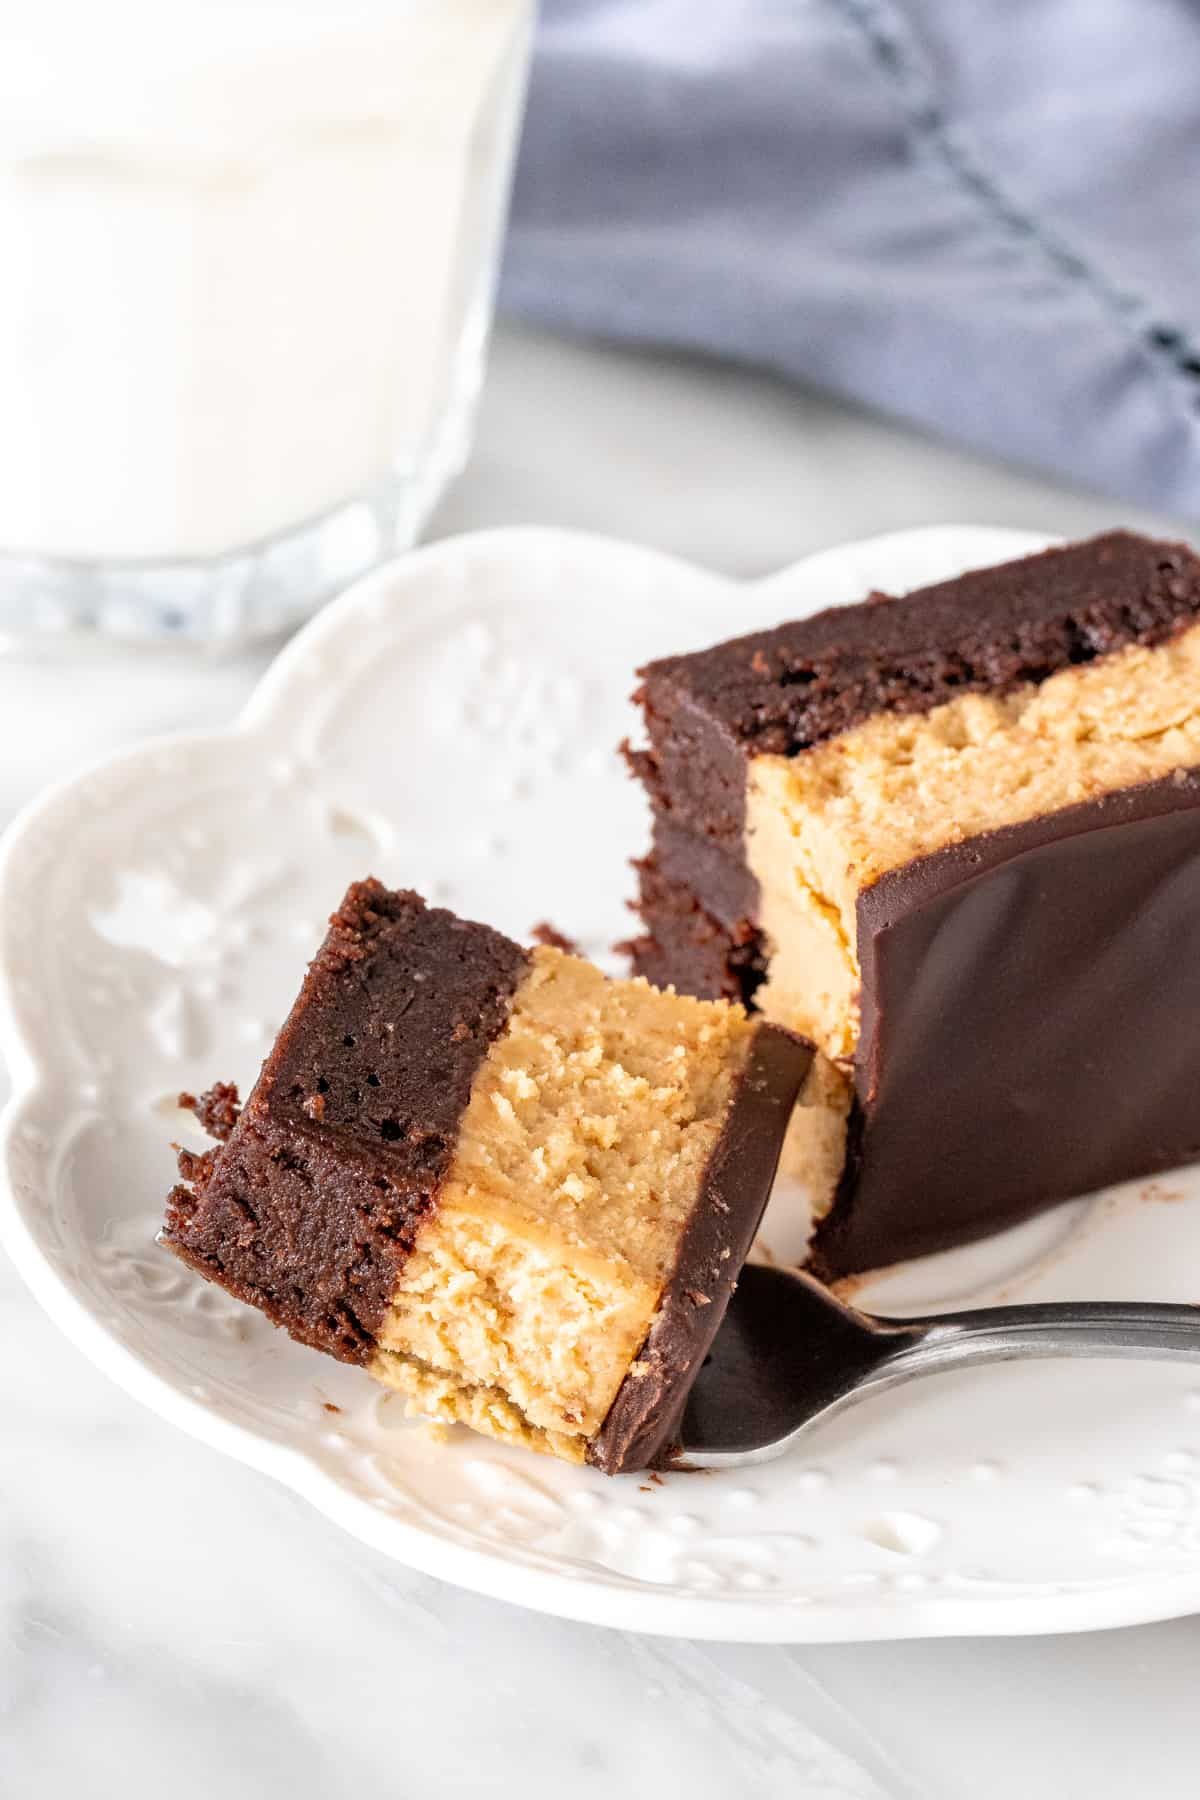 A bite of a peanut butter cheesecake brownie on a plate.